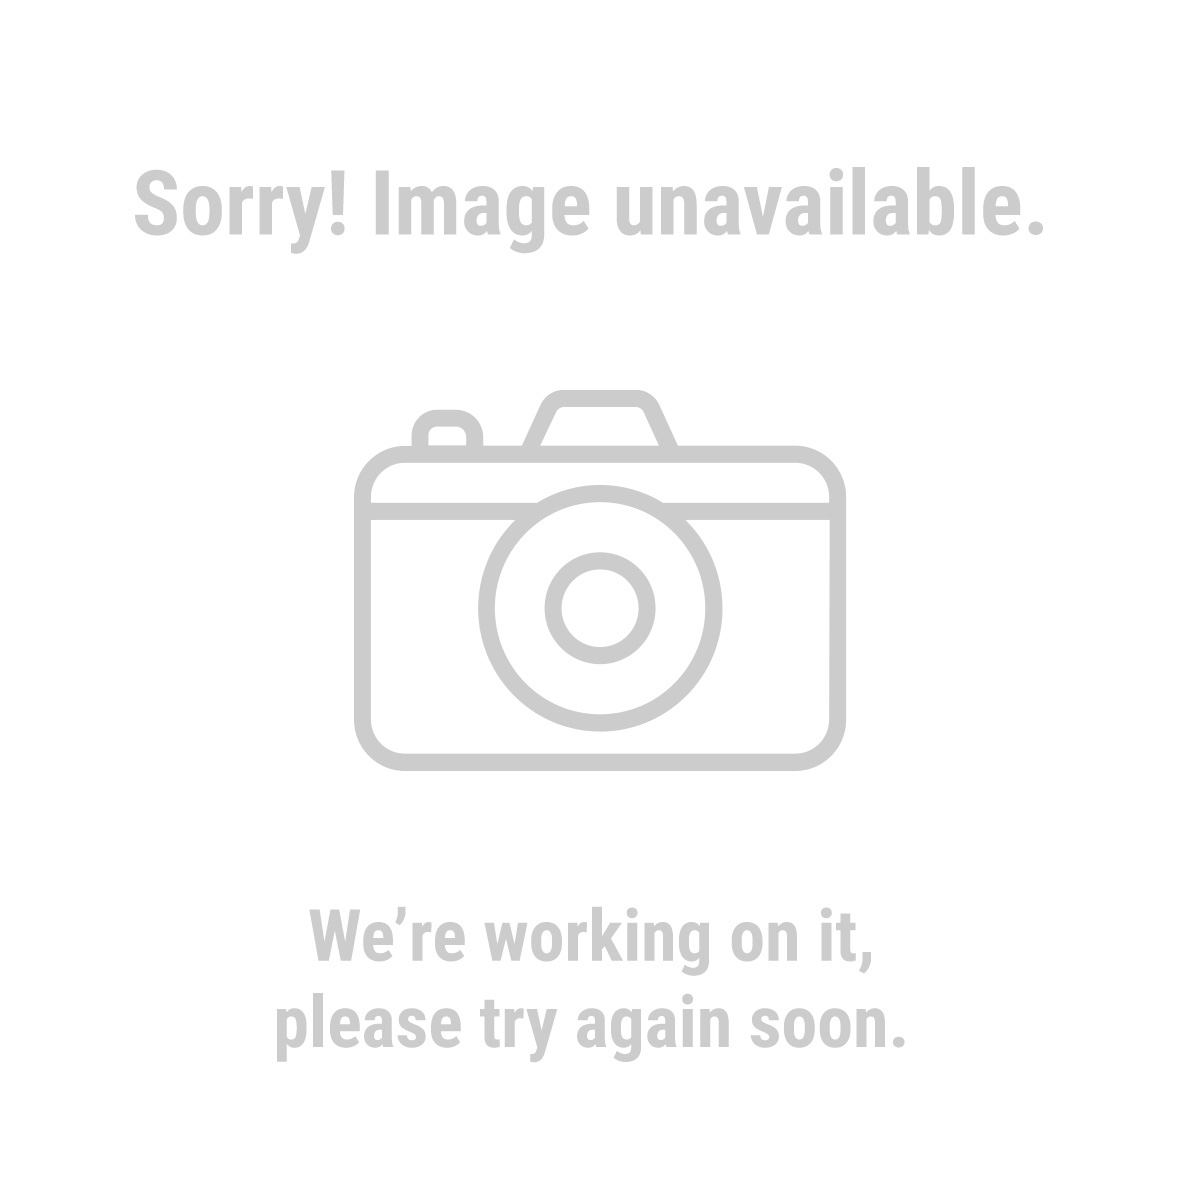 Warrior 68871 7 Piece Three-Wing Slotting Cutter Router Bit Set